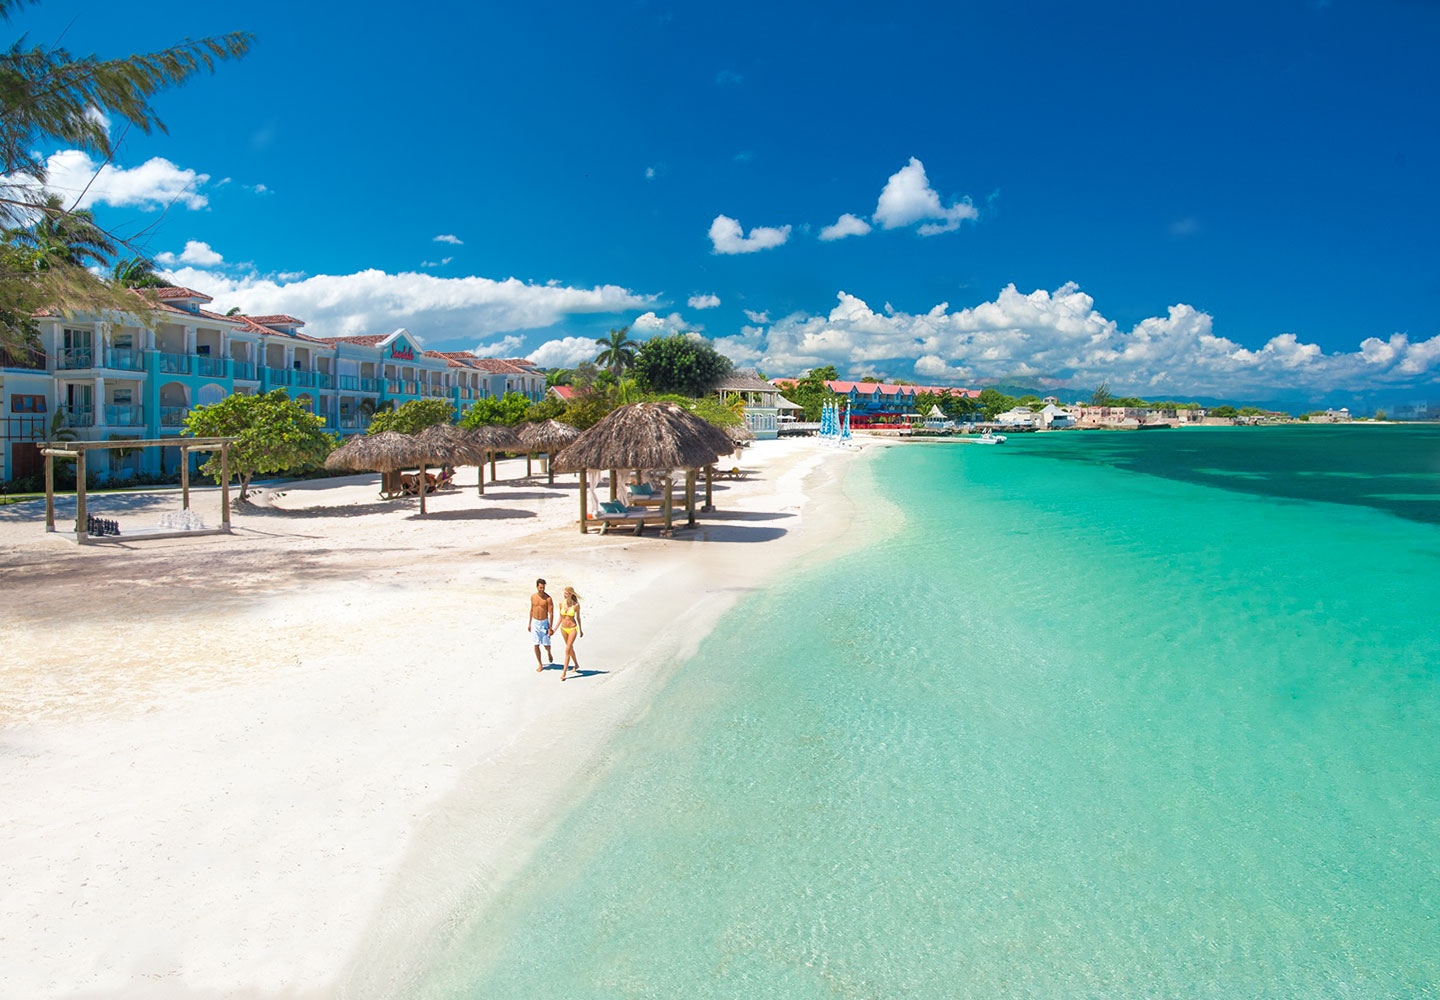 Travel Agency All-Inclusive Resort Sandals Montego Bay 001